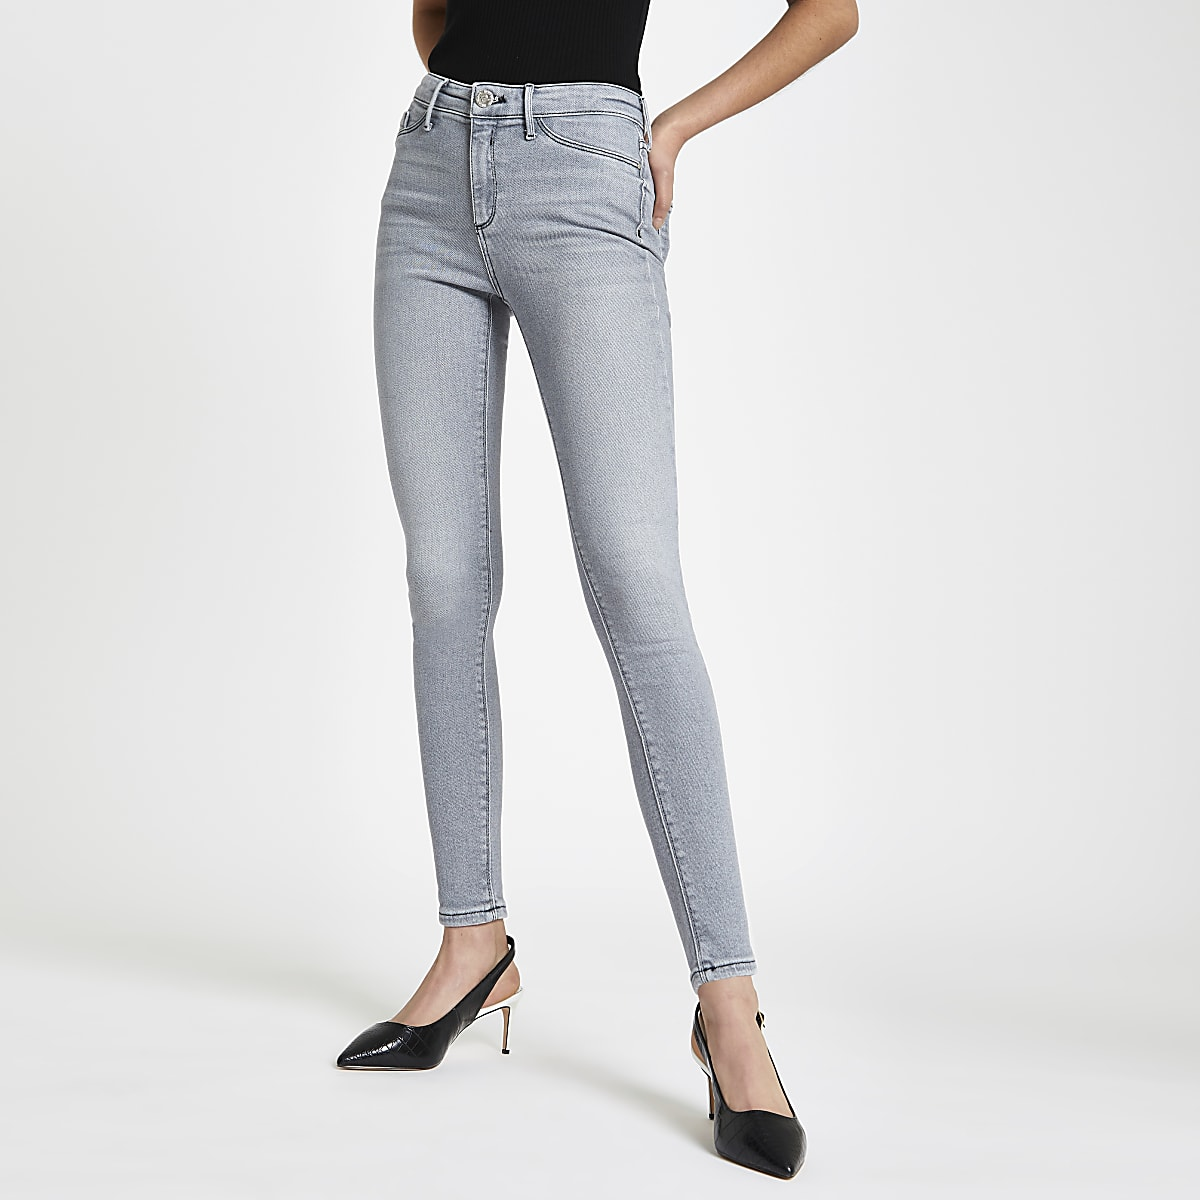 Grey Molly contrast mid rise jeggings